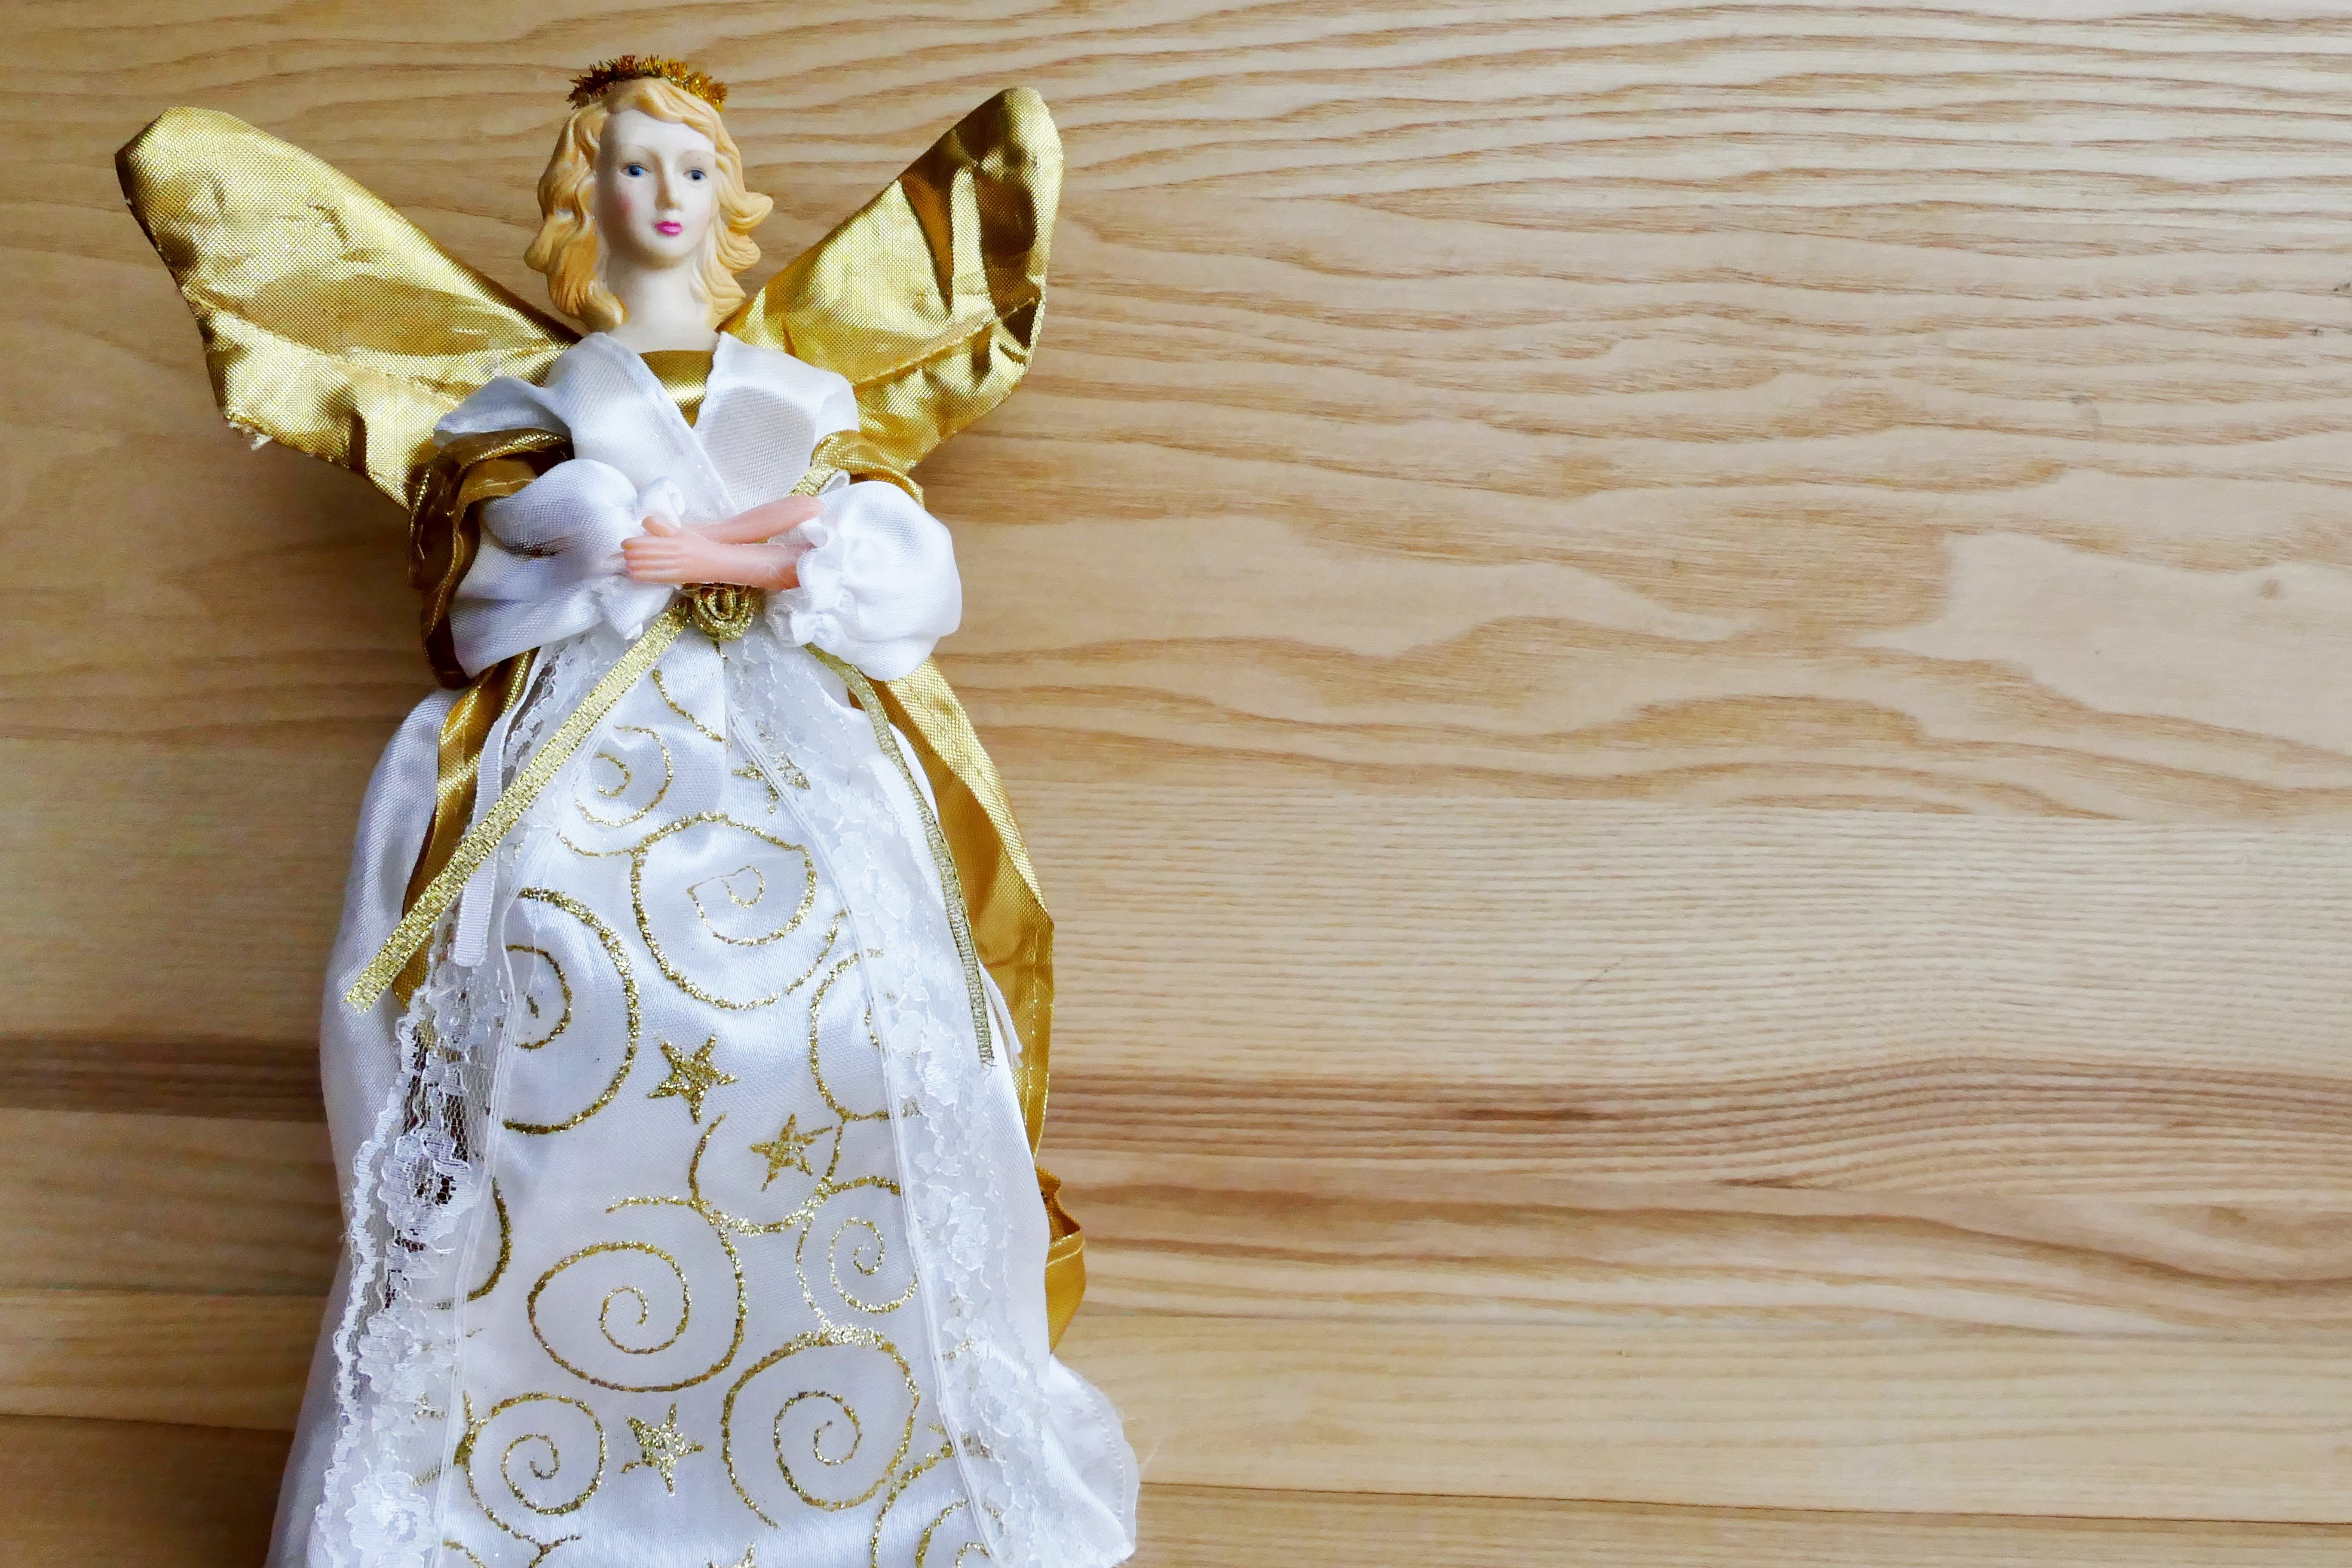 Angel Ceramic Figurine on Beige Wooden Surface